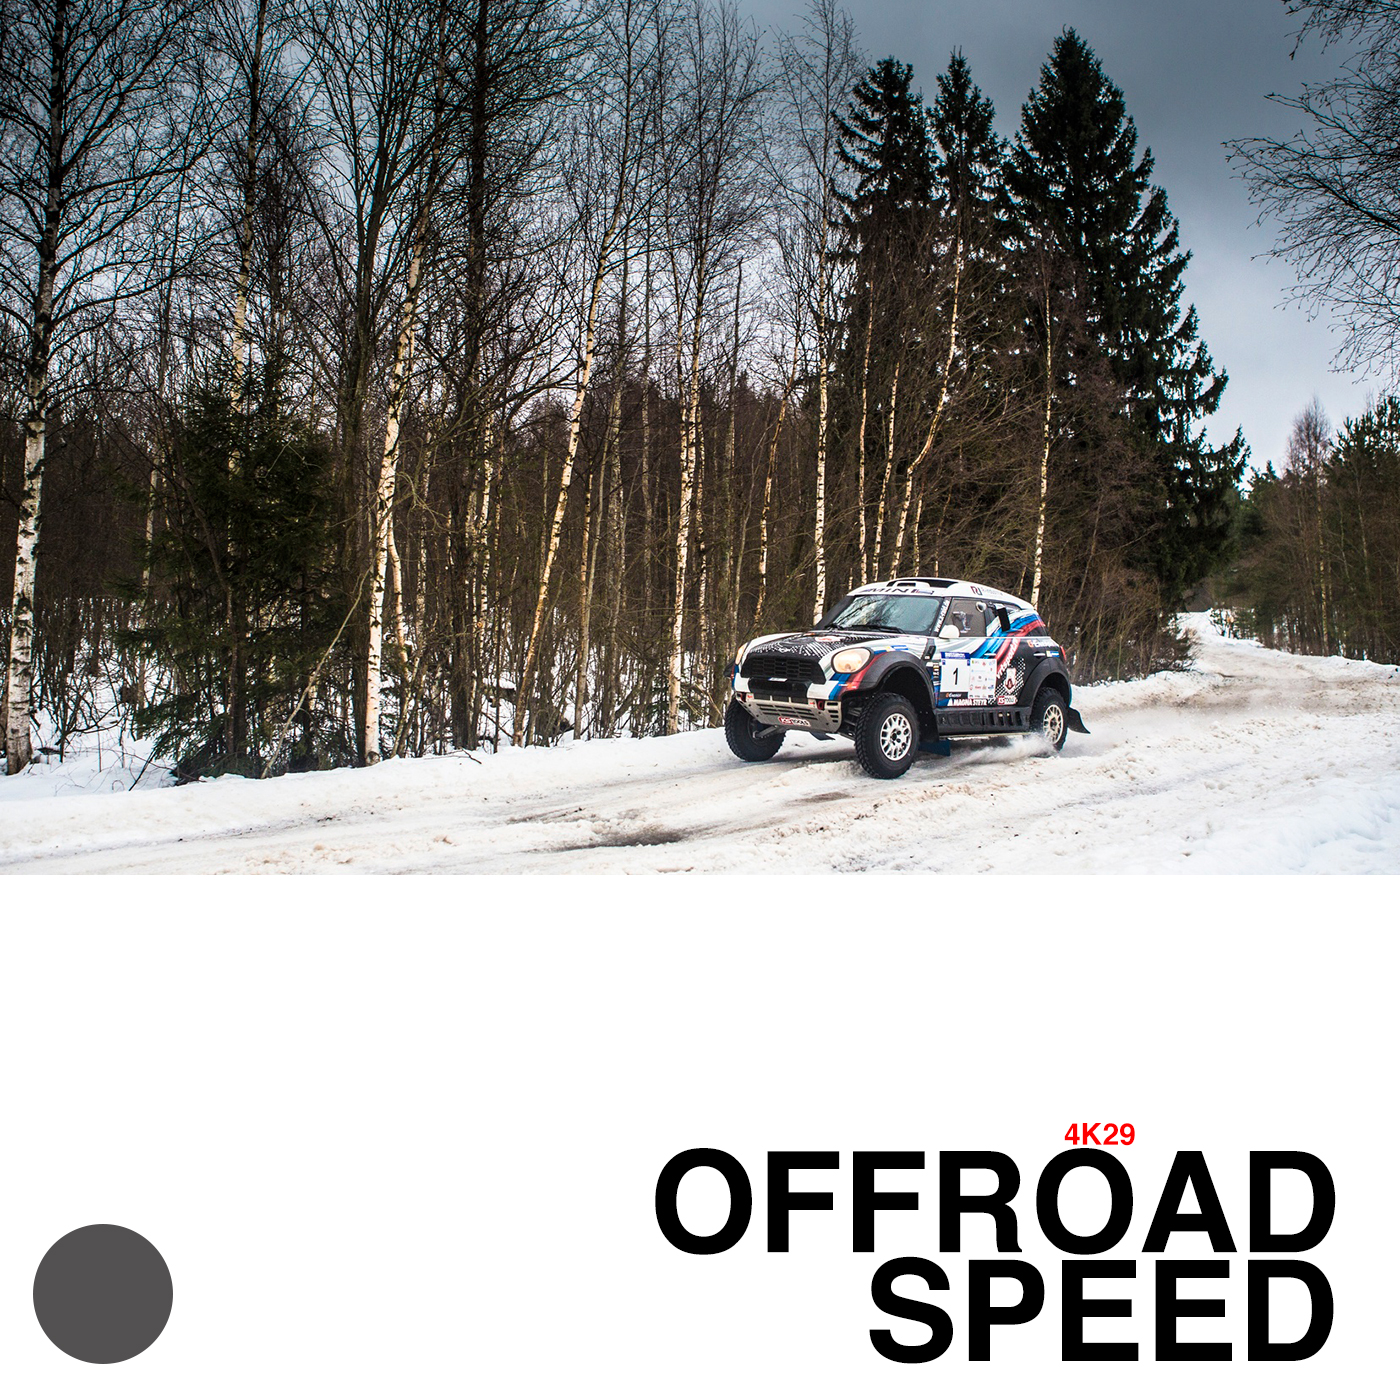 OFFROAD SPEED 4K29